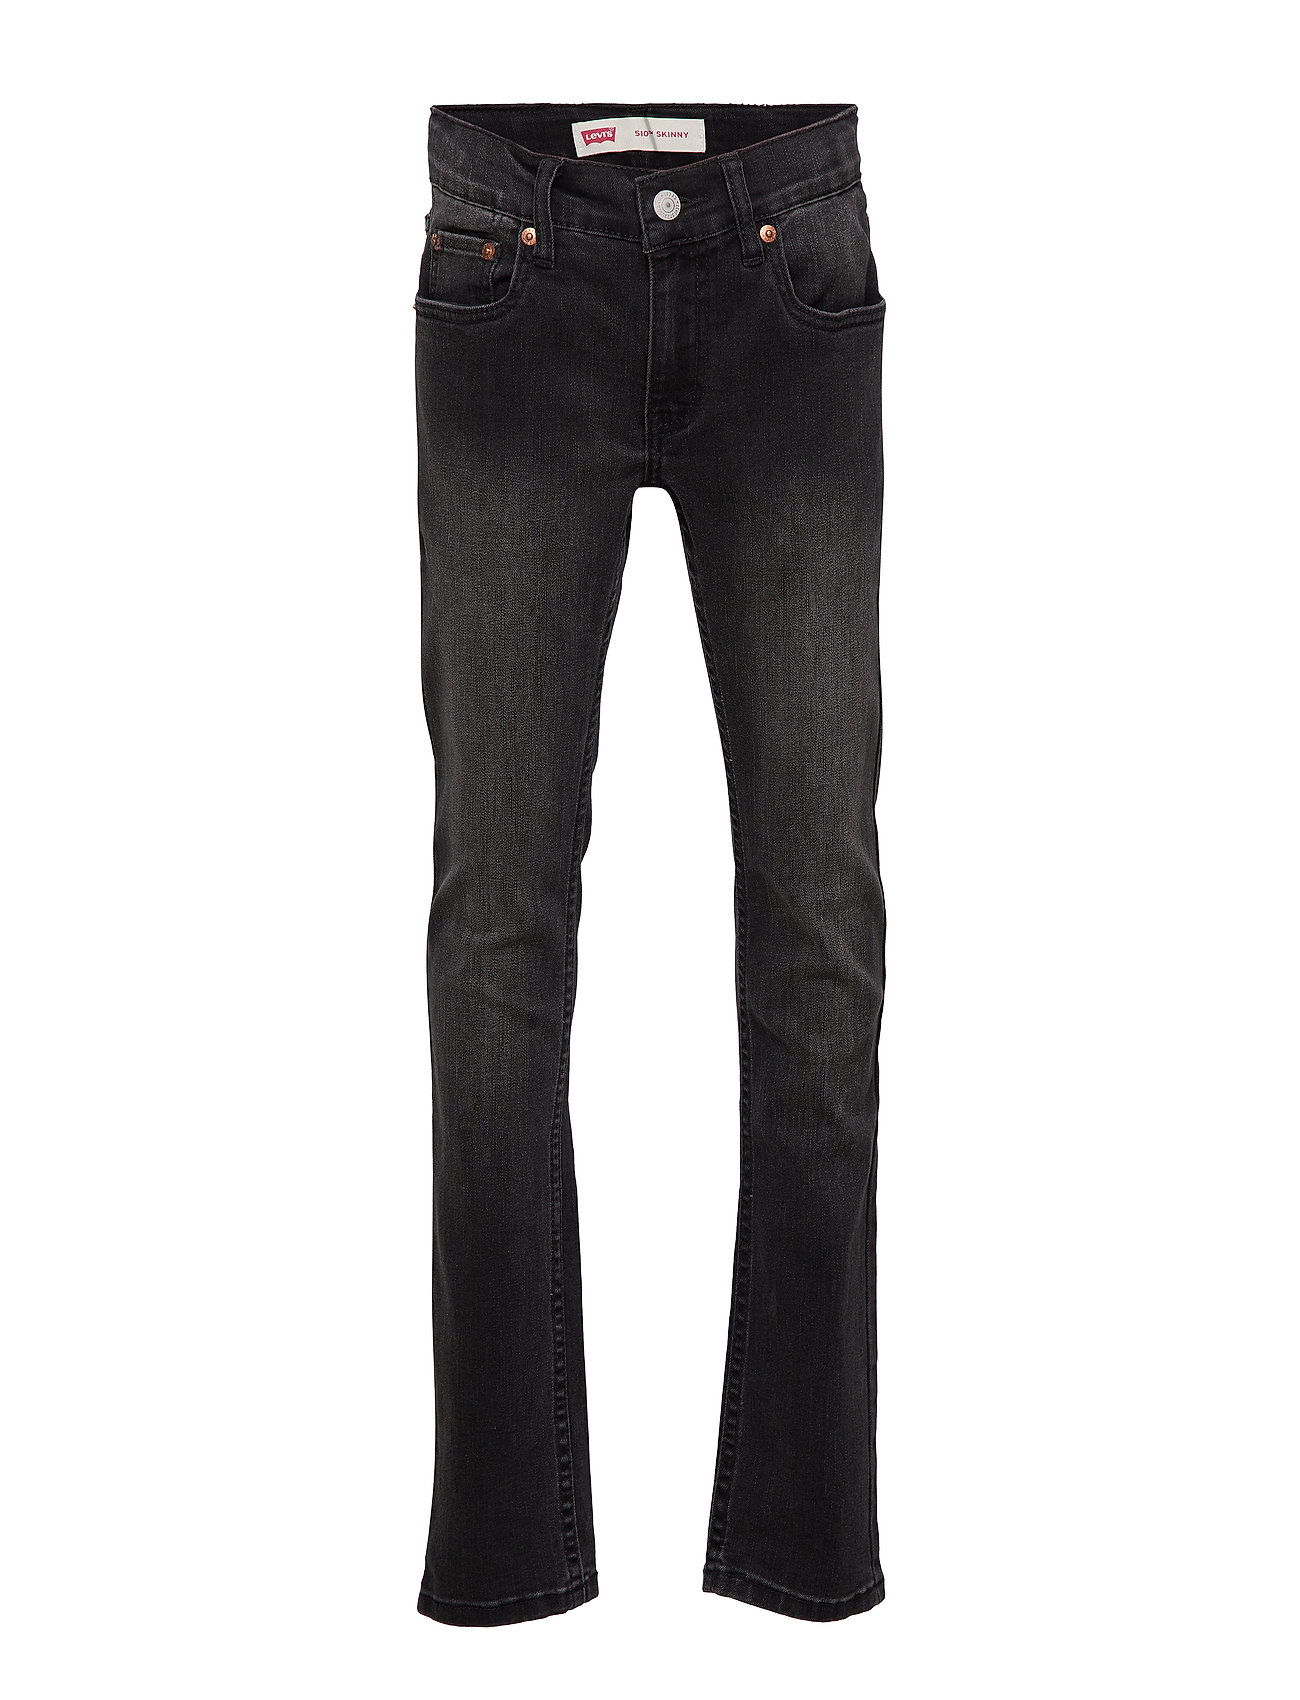 Levi's TROUSERS - BLACK ICE